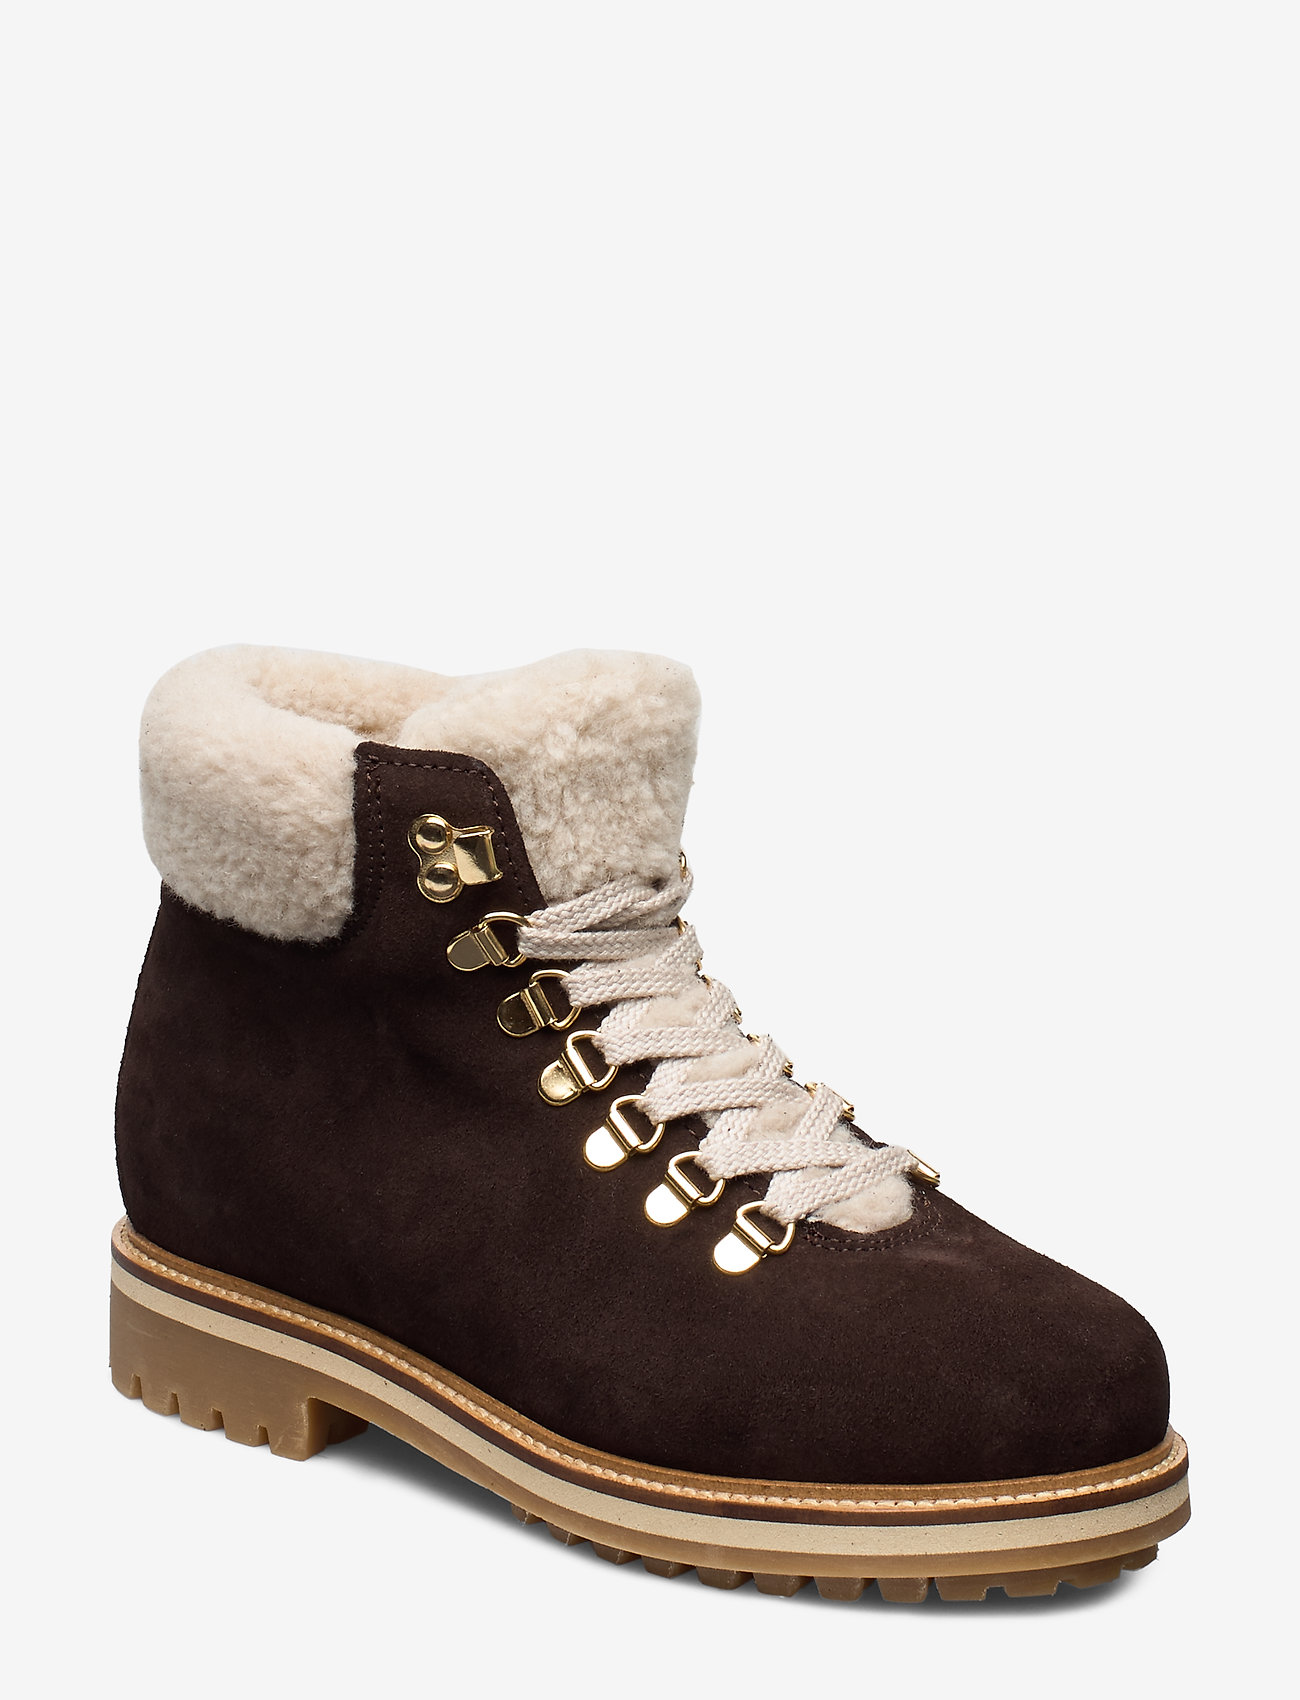 Sofie Schnoor - Boot - flat ankle boots - brown - 0